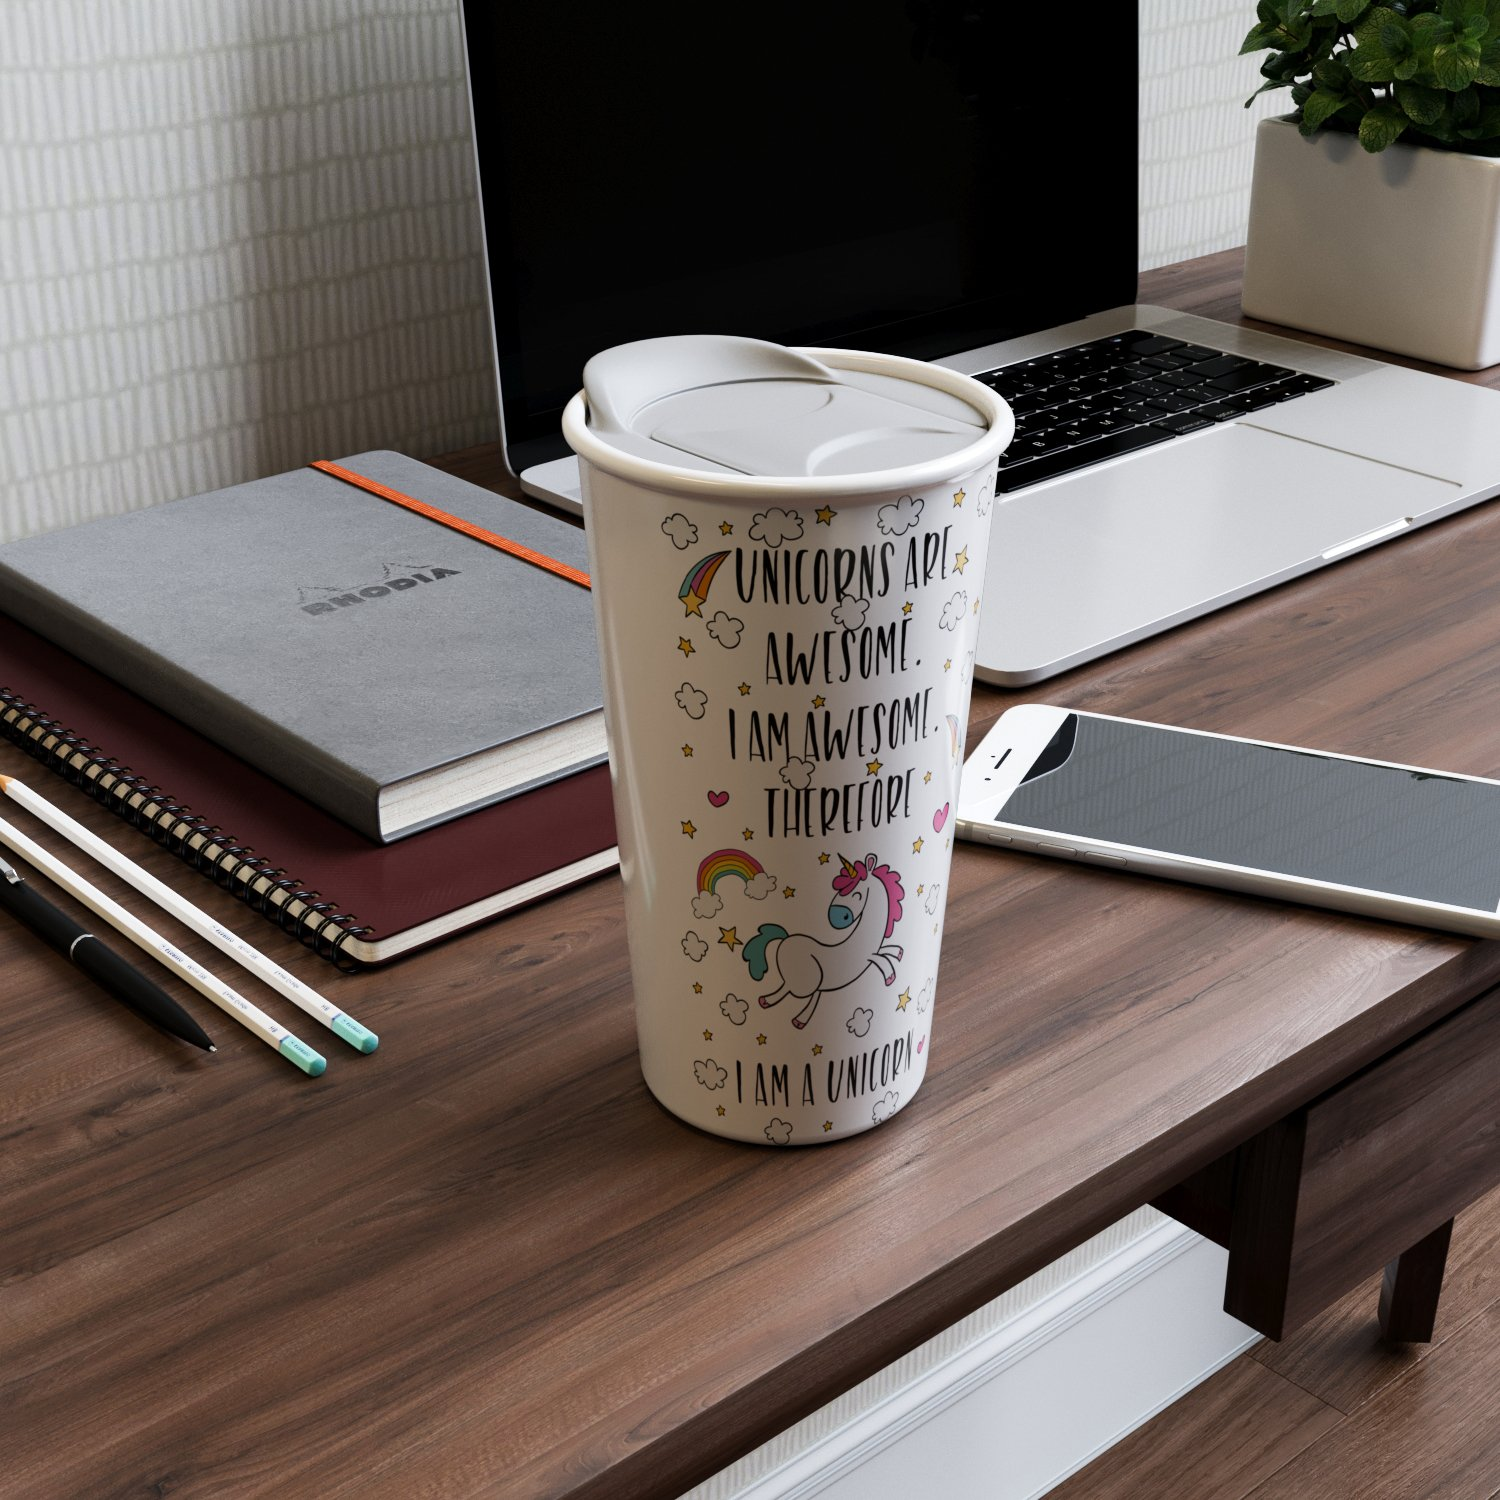 Ceramic Travel Coffee Mug with Lid (12 oz) - Unicorns Are Awesome - I am Awesome - Therefore I Am A Unicorn - Funny Coffee Mug - Double Wall Ceramic - BPA-Free Lid - Dishwasher Safe. 5.6''x 3.5'' by Comfify (Image #3)